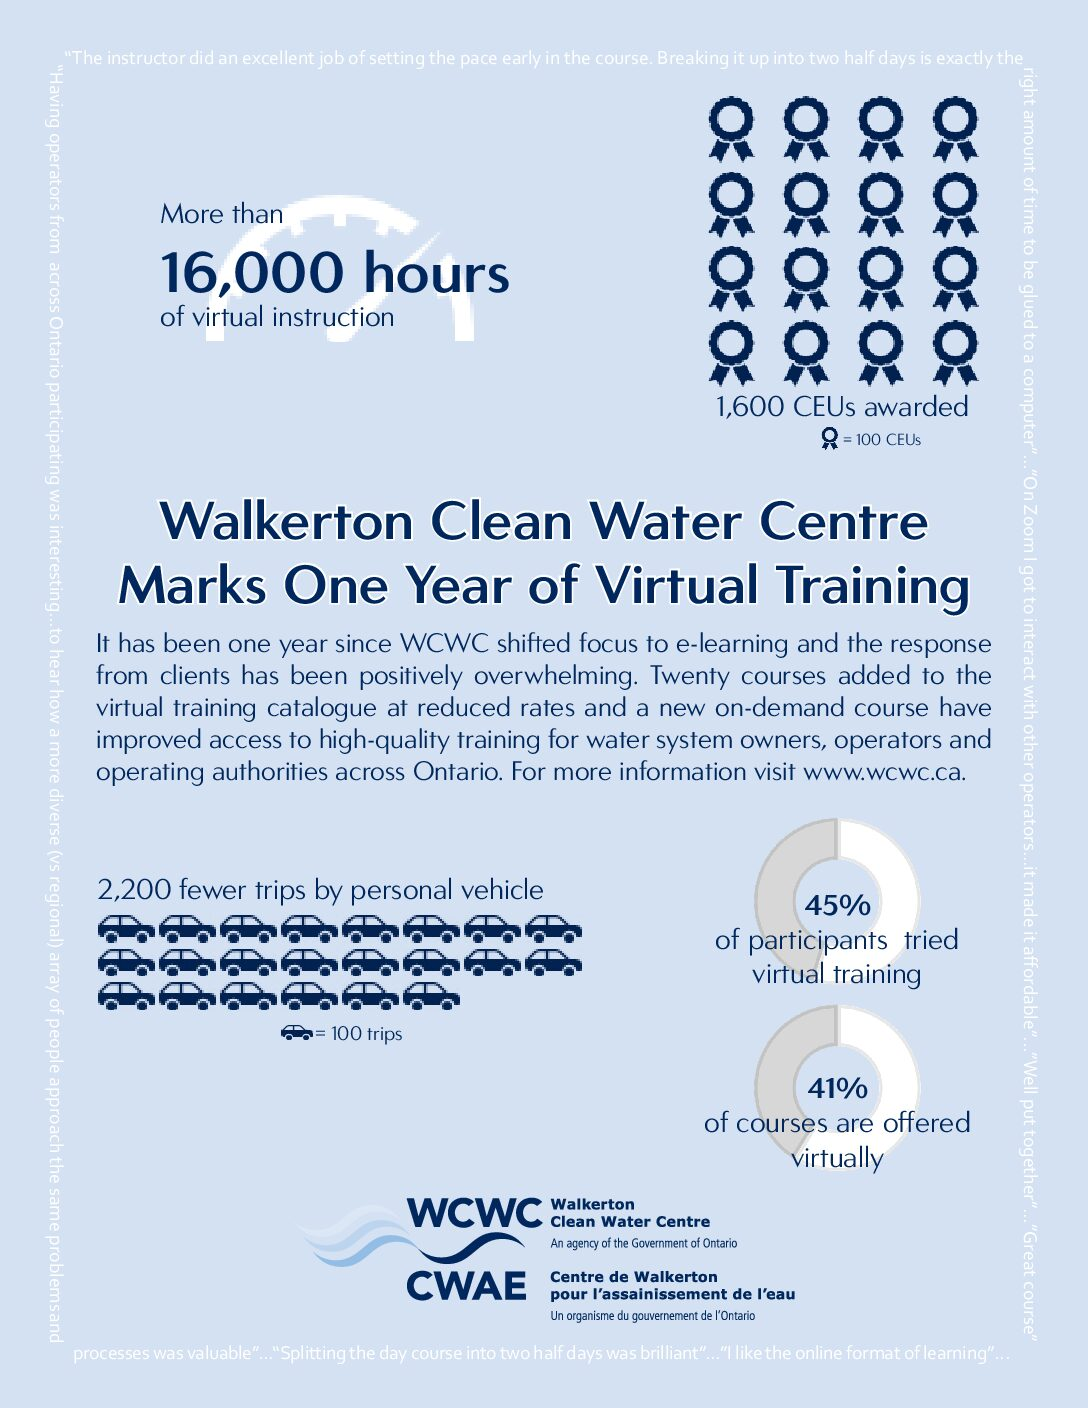 WALKERTON CLEAN WATER CENTRE MARKS ONE YEAR OF VIRTUAL TRAINING